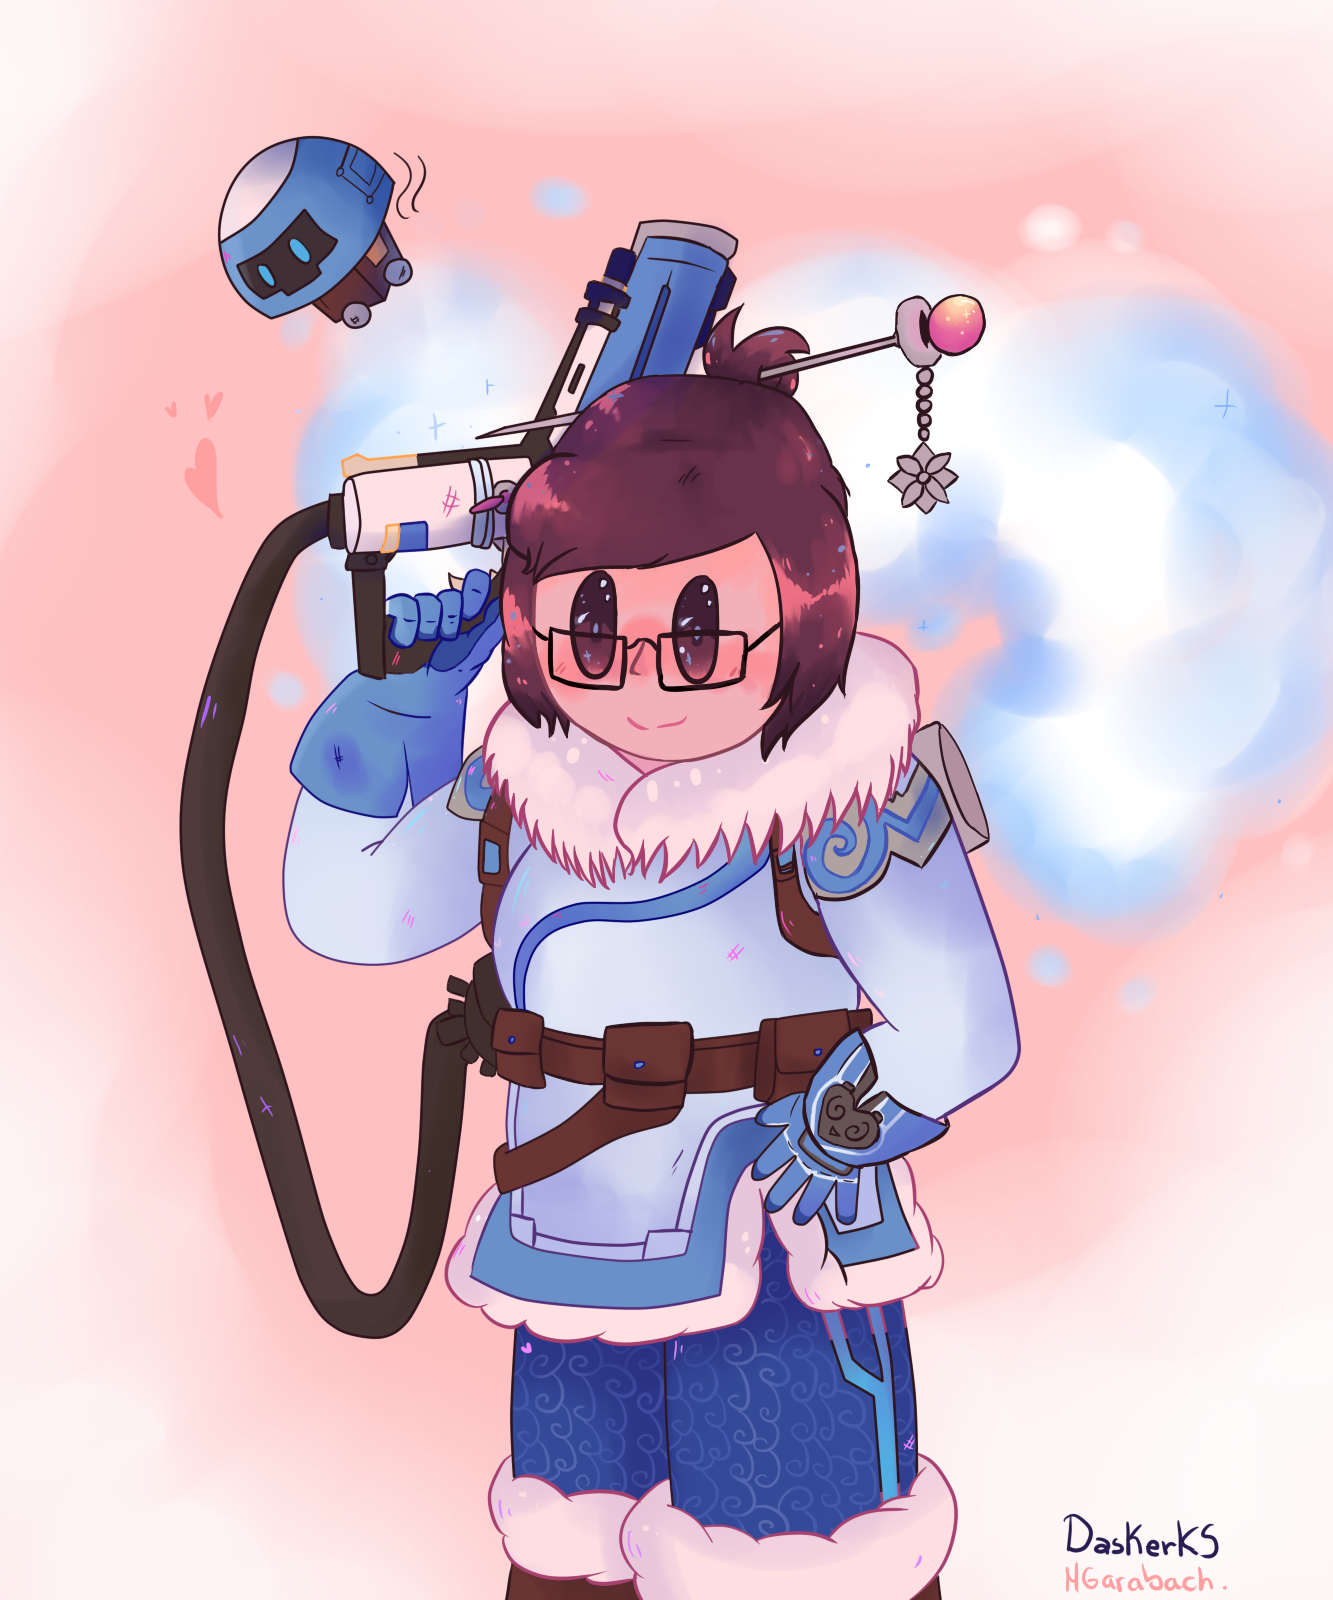 Mei and her tiny bot